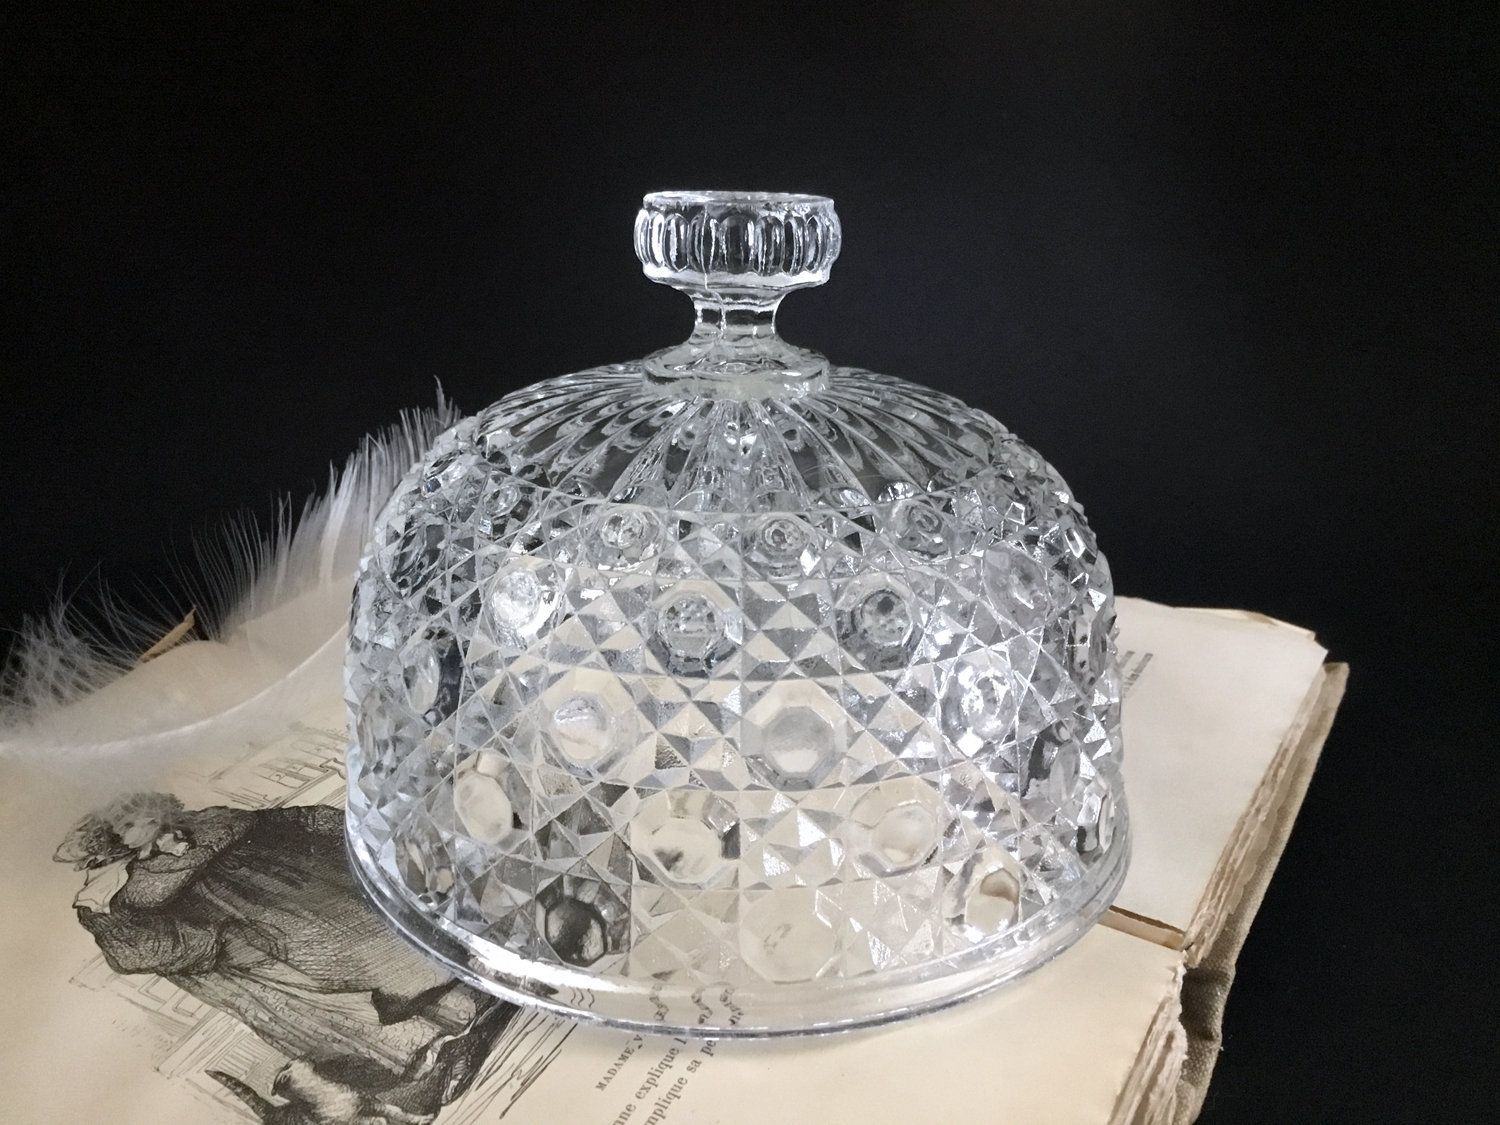 Beautiful french vintage pressed glass serving plate and matching cloche dome food protector